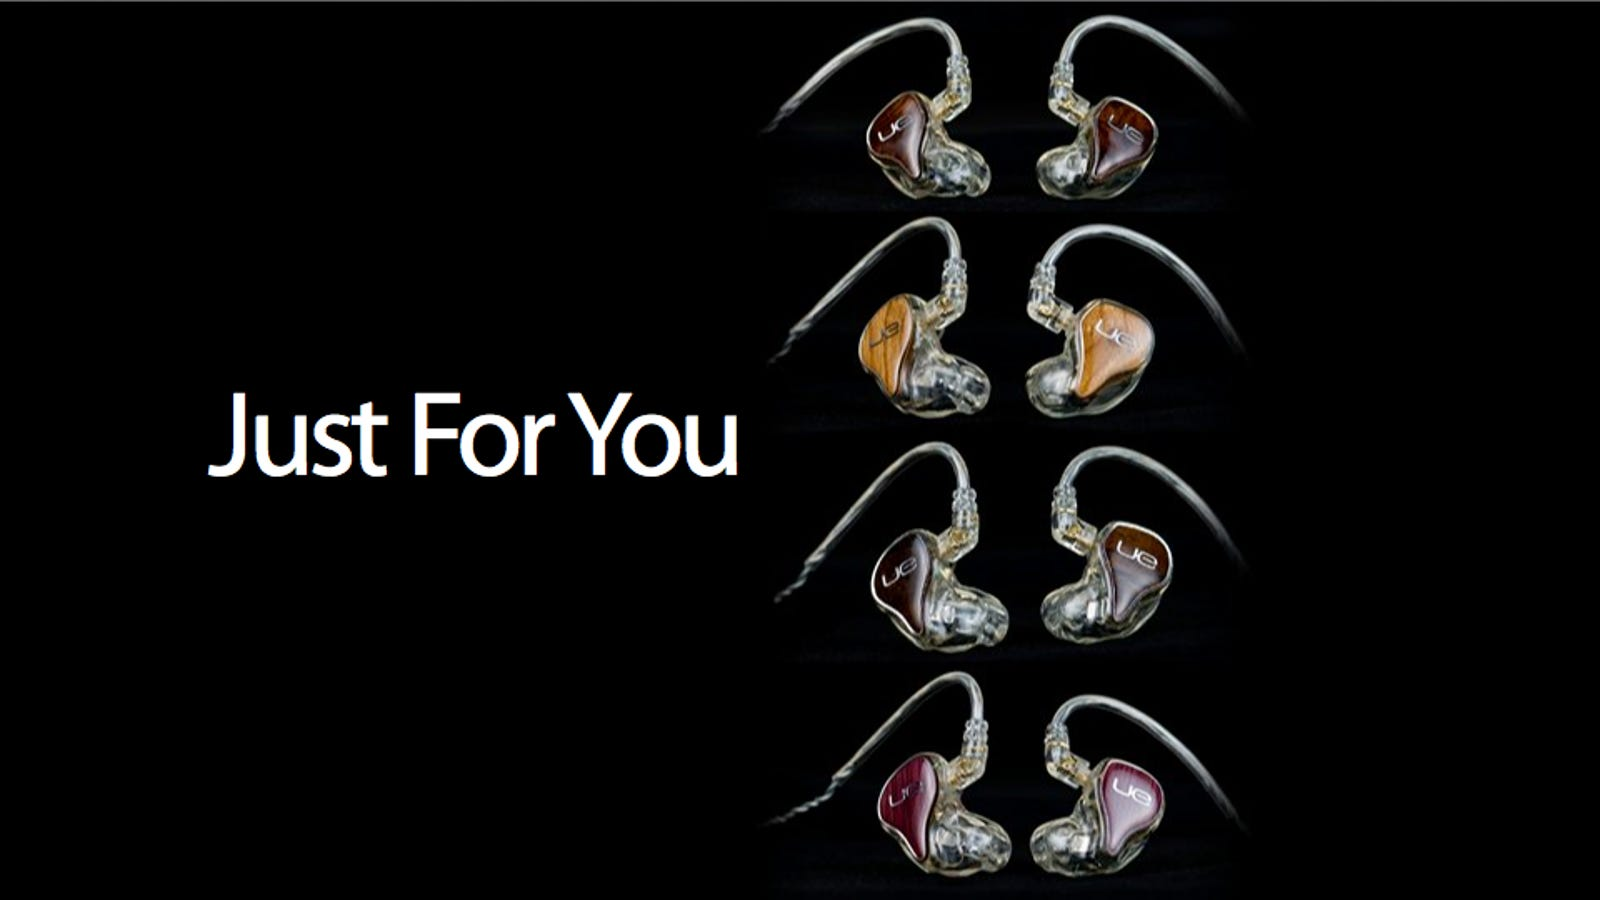 earbuds with mic high quality - $2000 Customizable Earbuds Come With a Personal Sound Coach